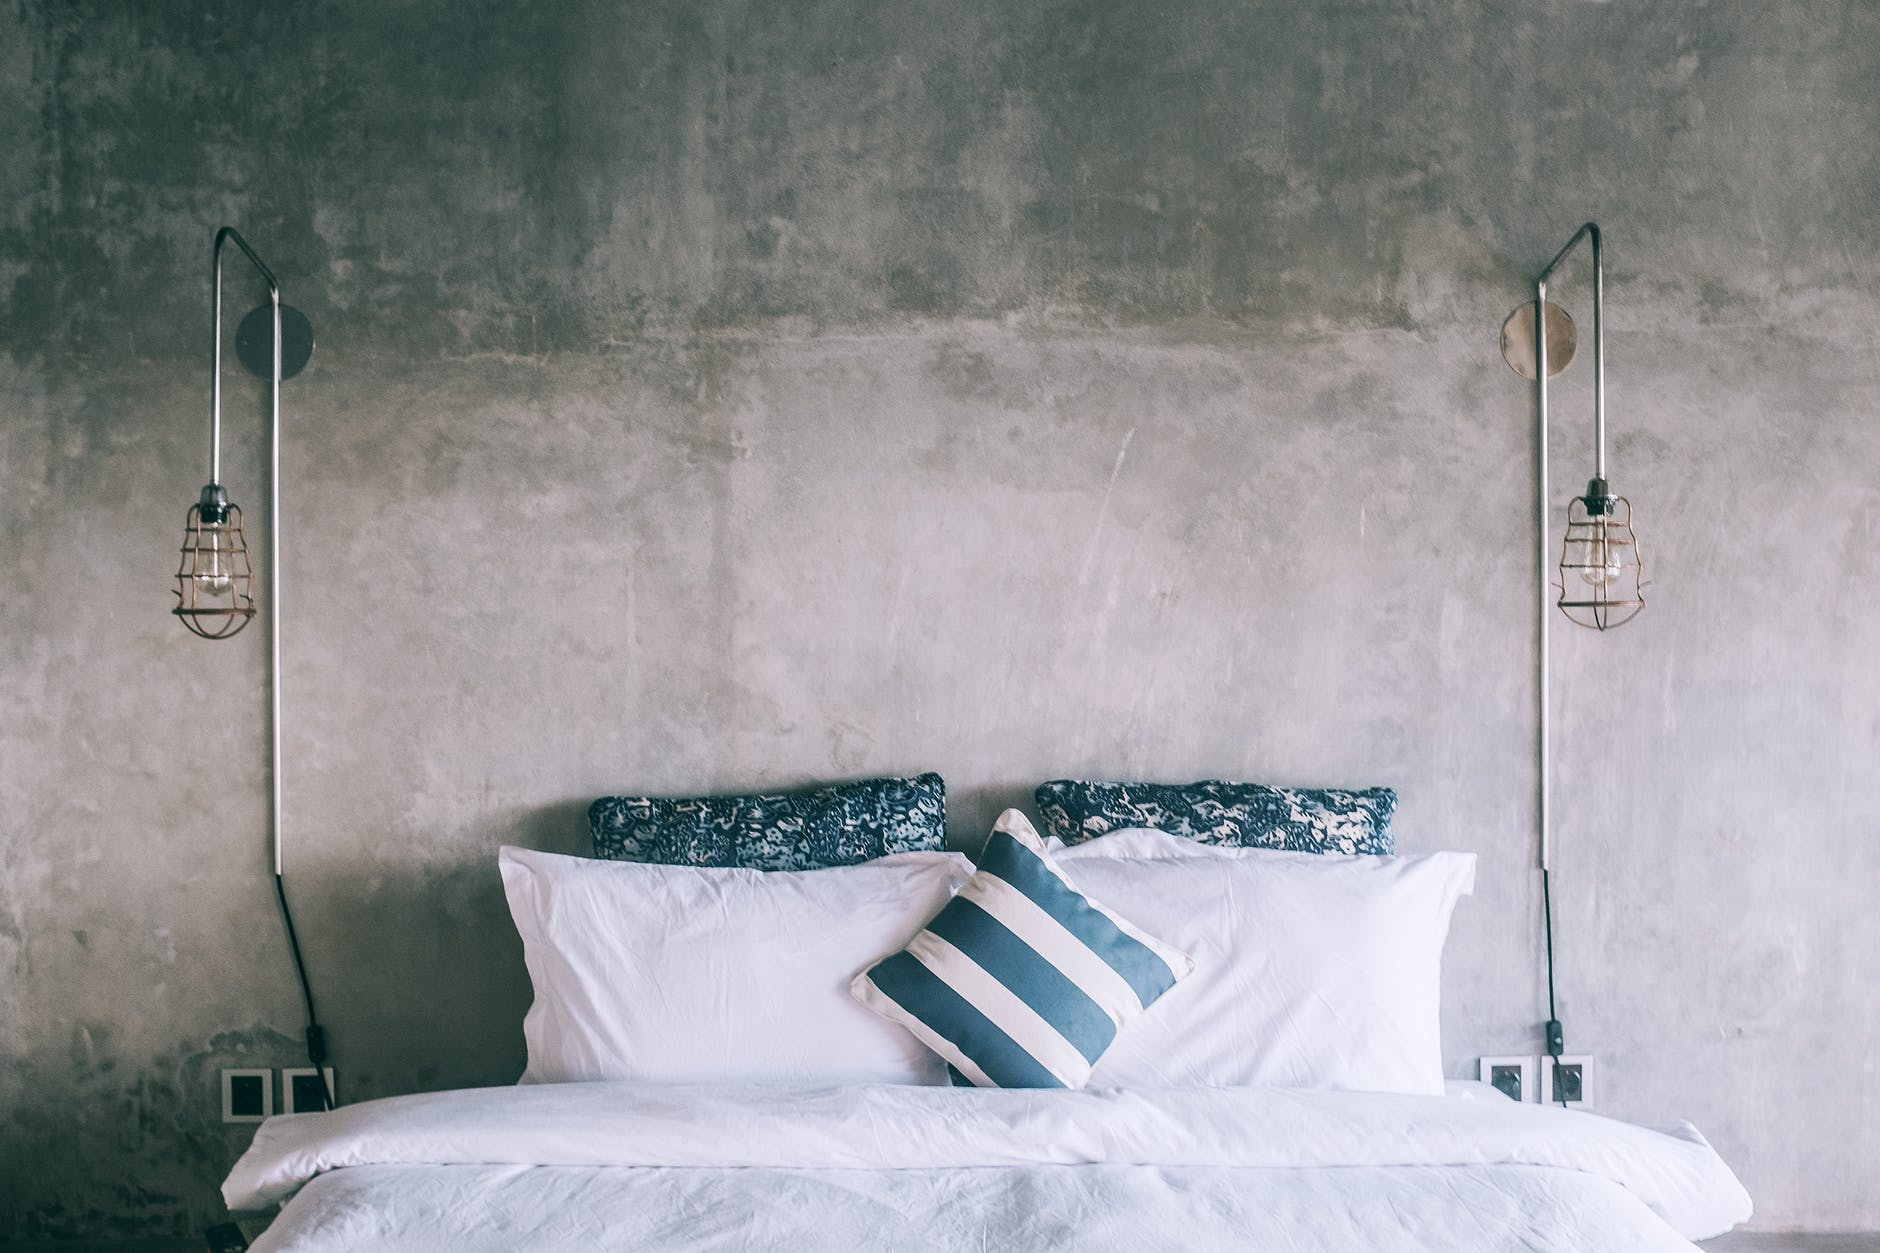 Double bed with a blue cover and pillows.